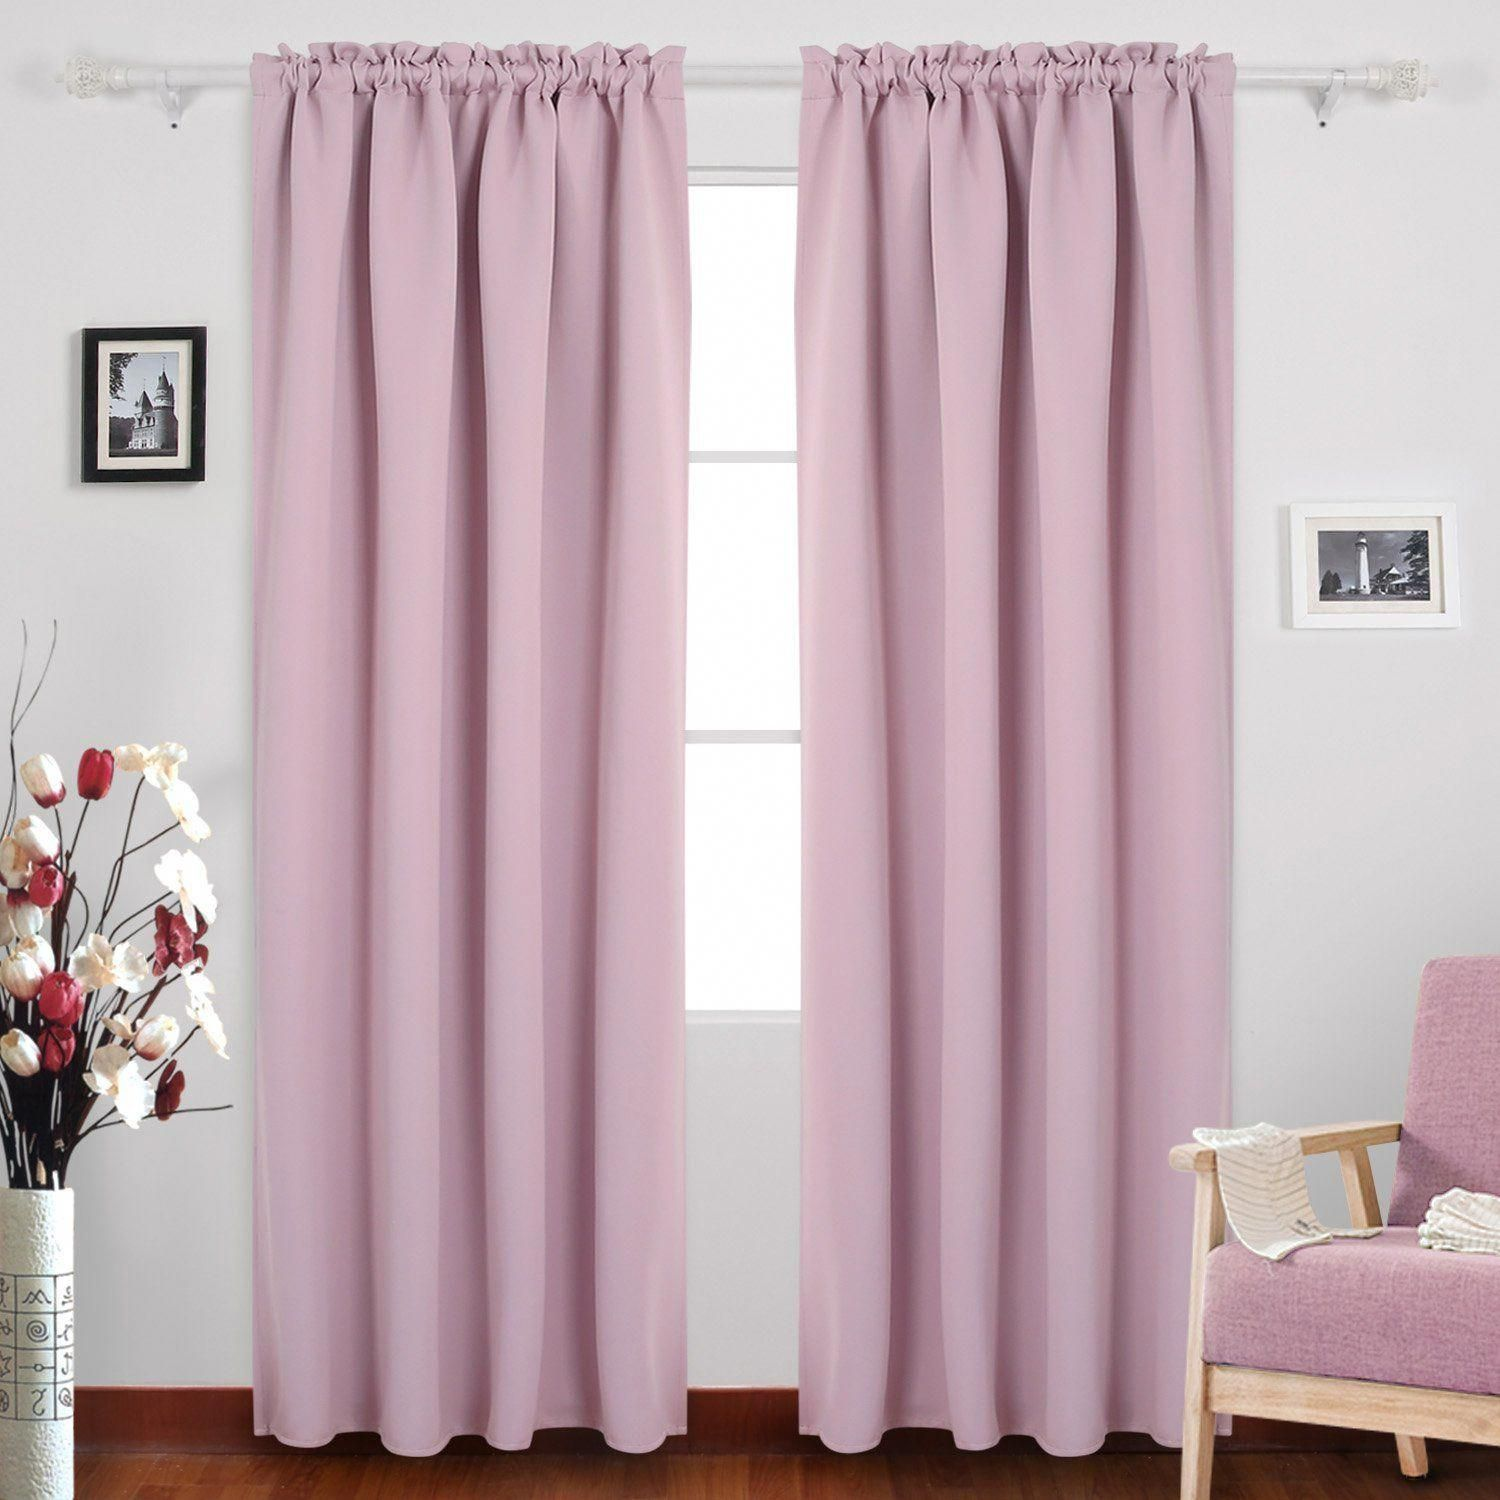 Best 3d Scenery Blackout Curtains Online Curtains Thermal Curtains